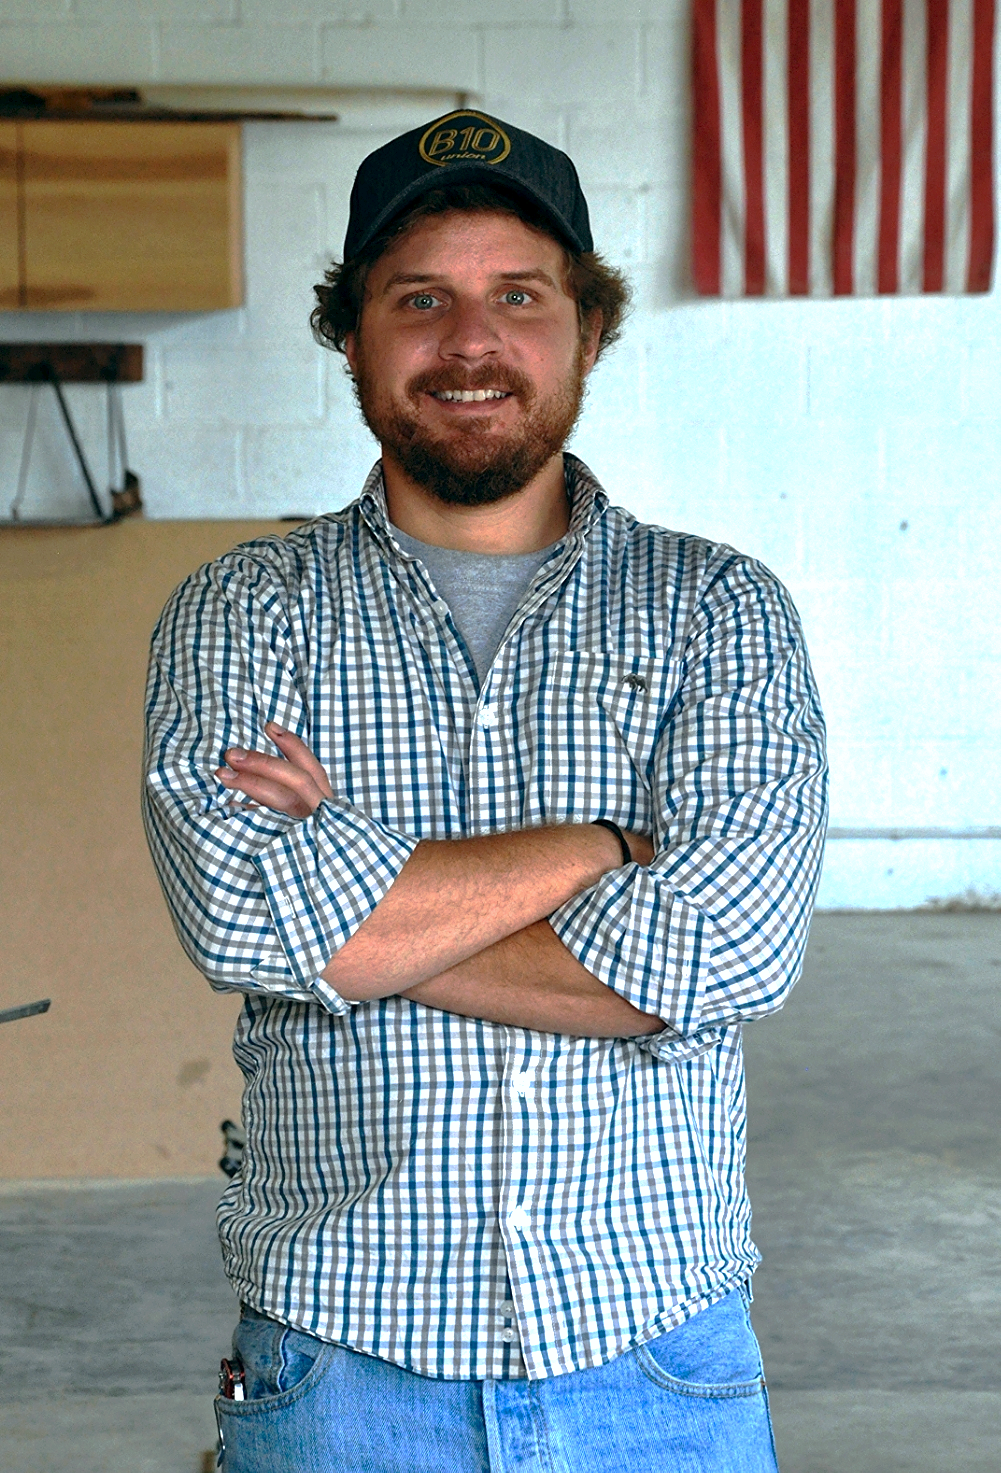 Harrison Bain is a designer, builder, and creator with a Bachelor of Science in Construction Management from Auburn University. As a lifelong woodworker, Harrison enjoys creating pieces that serve practically and inspire aesthetically.